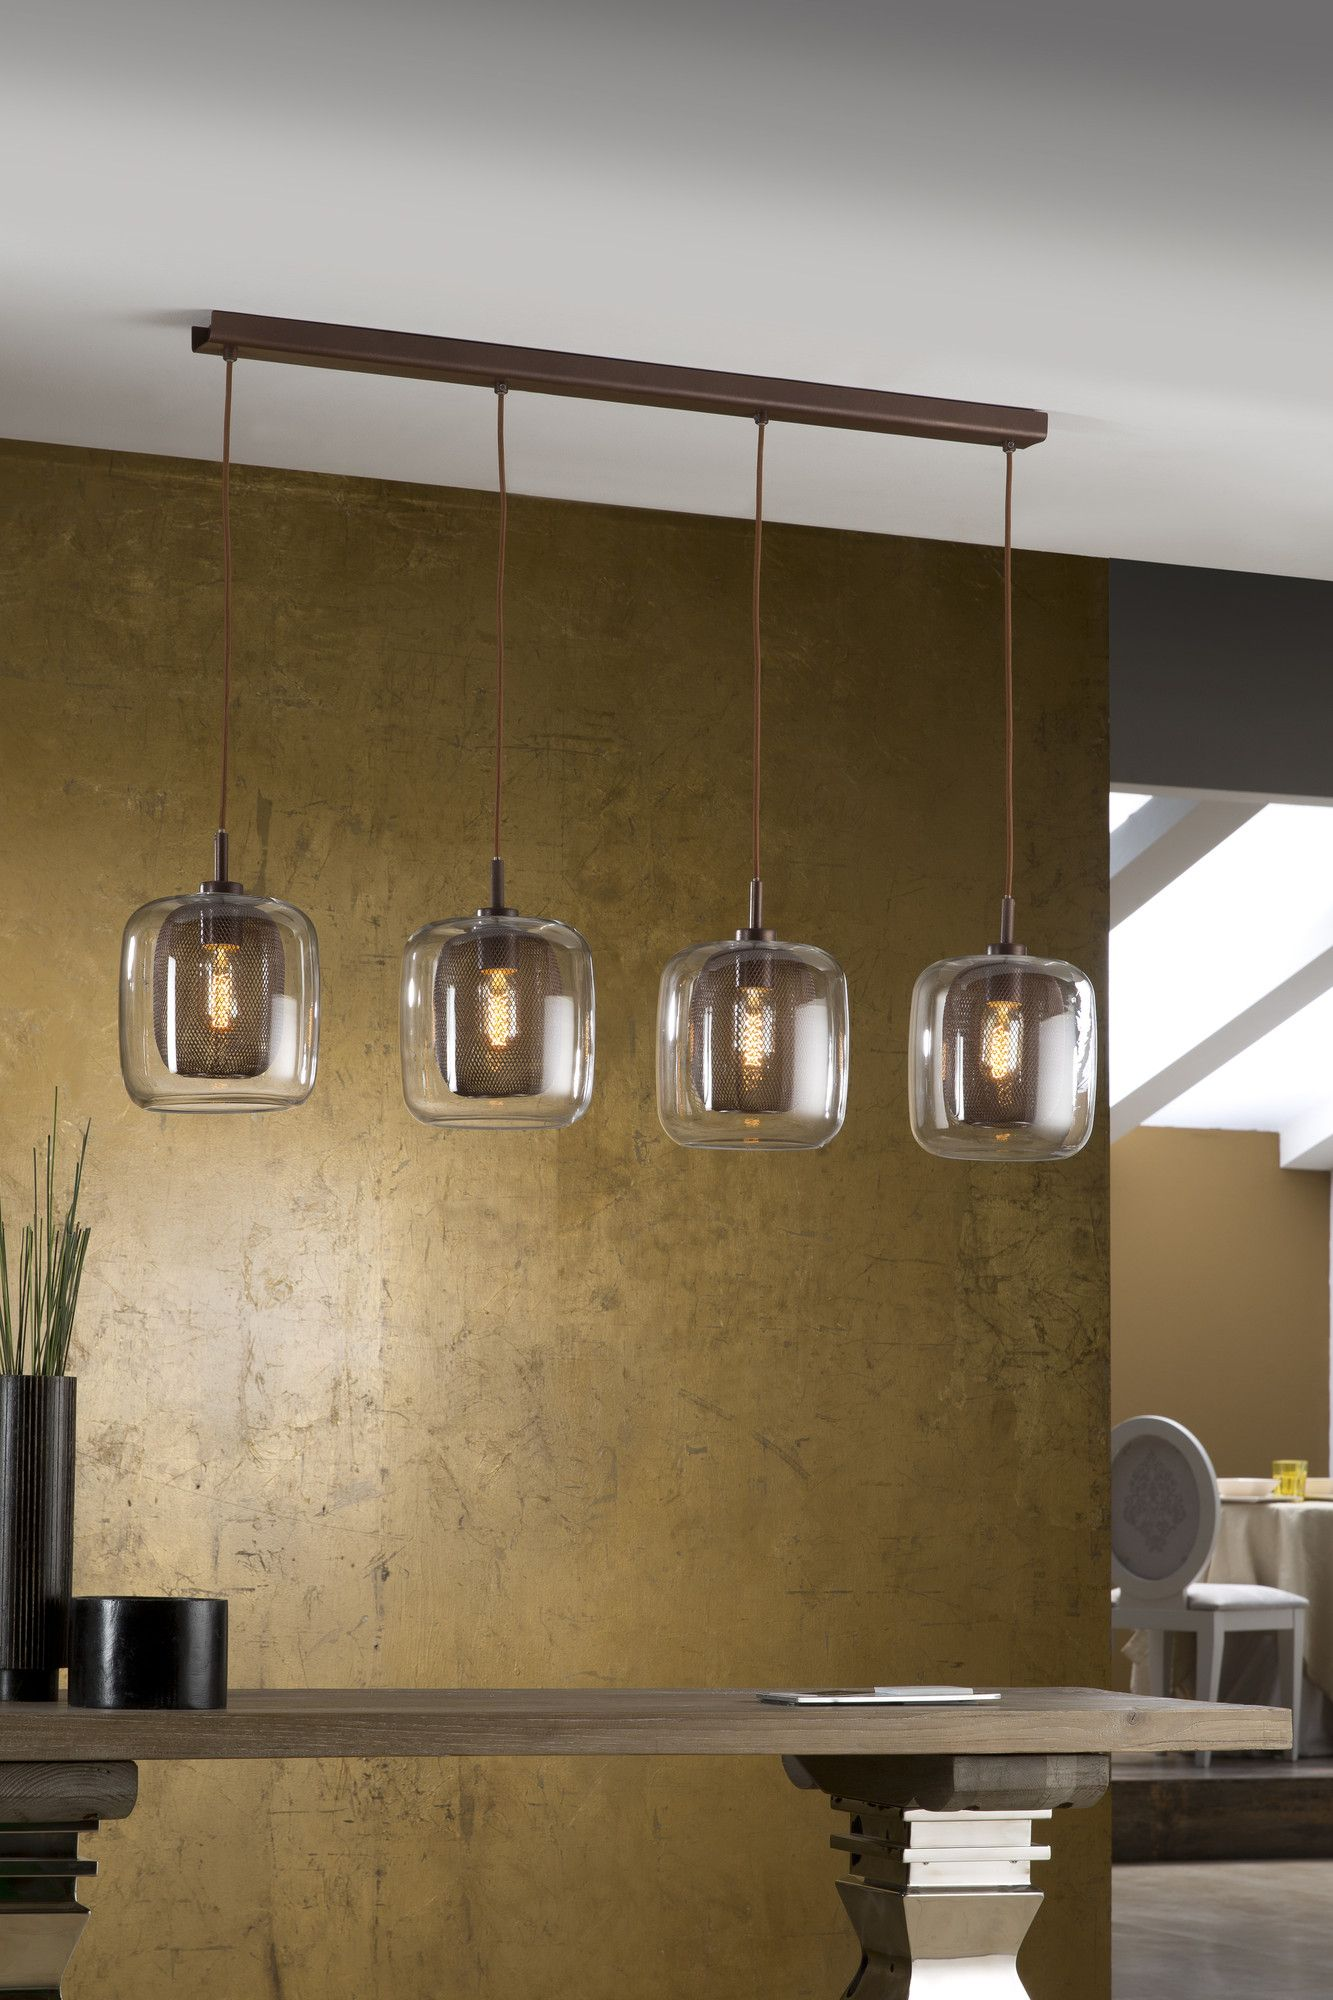 Schuller Fox 4 Light Kitchen Pendant | Kitchen Island Pendants, Kitchen Pendants, Kitchen Lighting